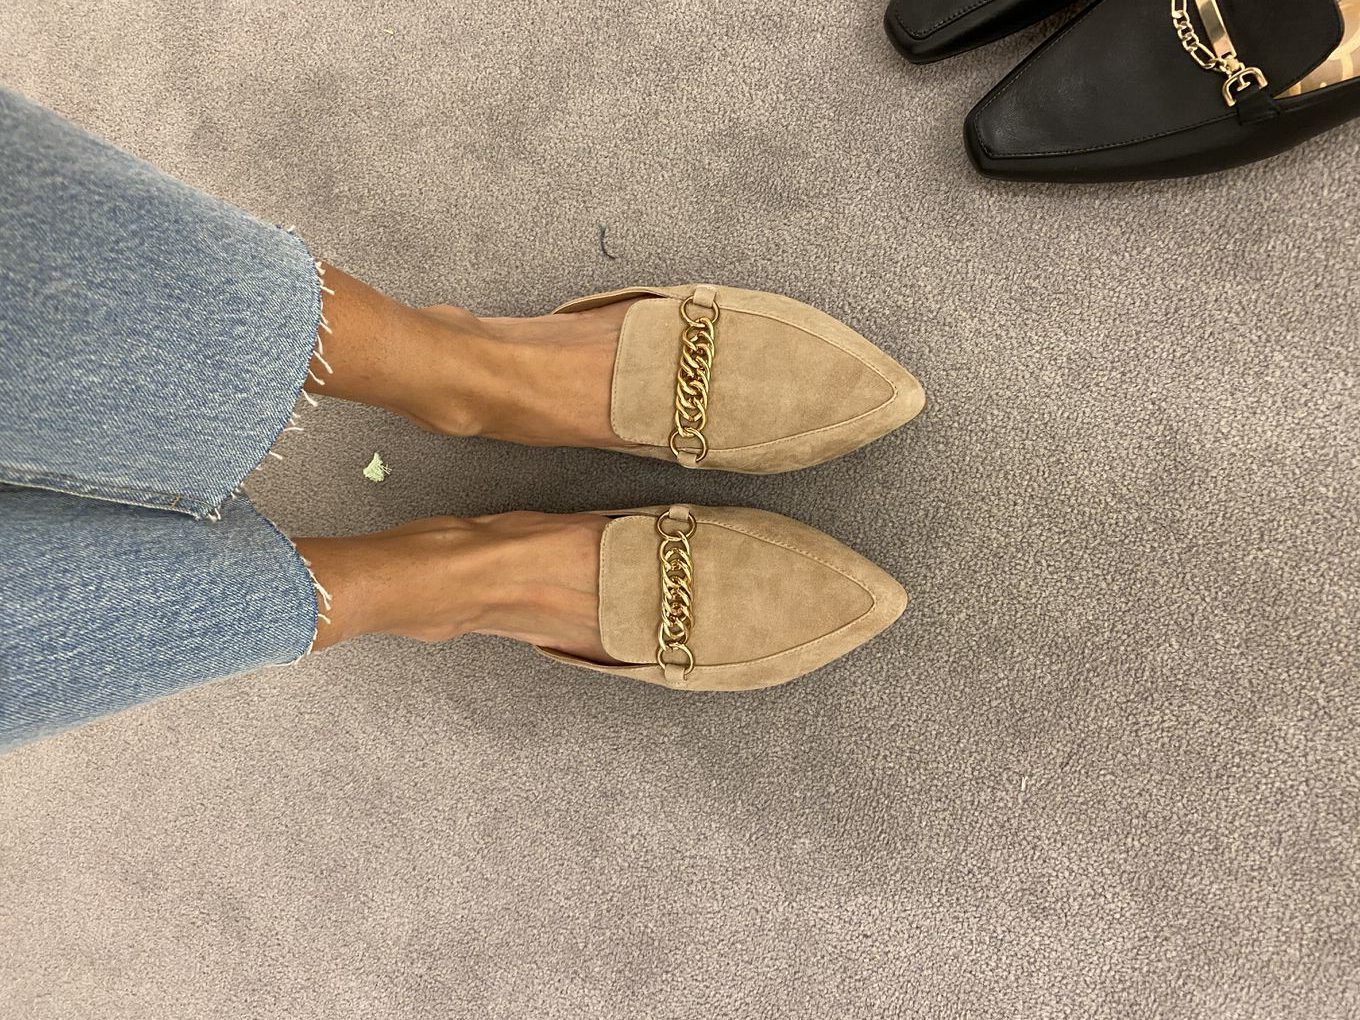 shoes from the nordstrom sale